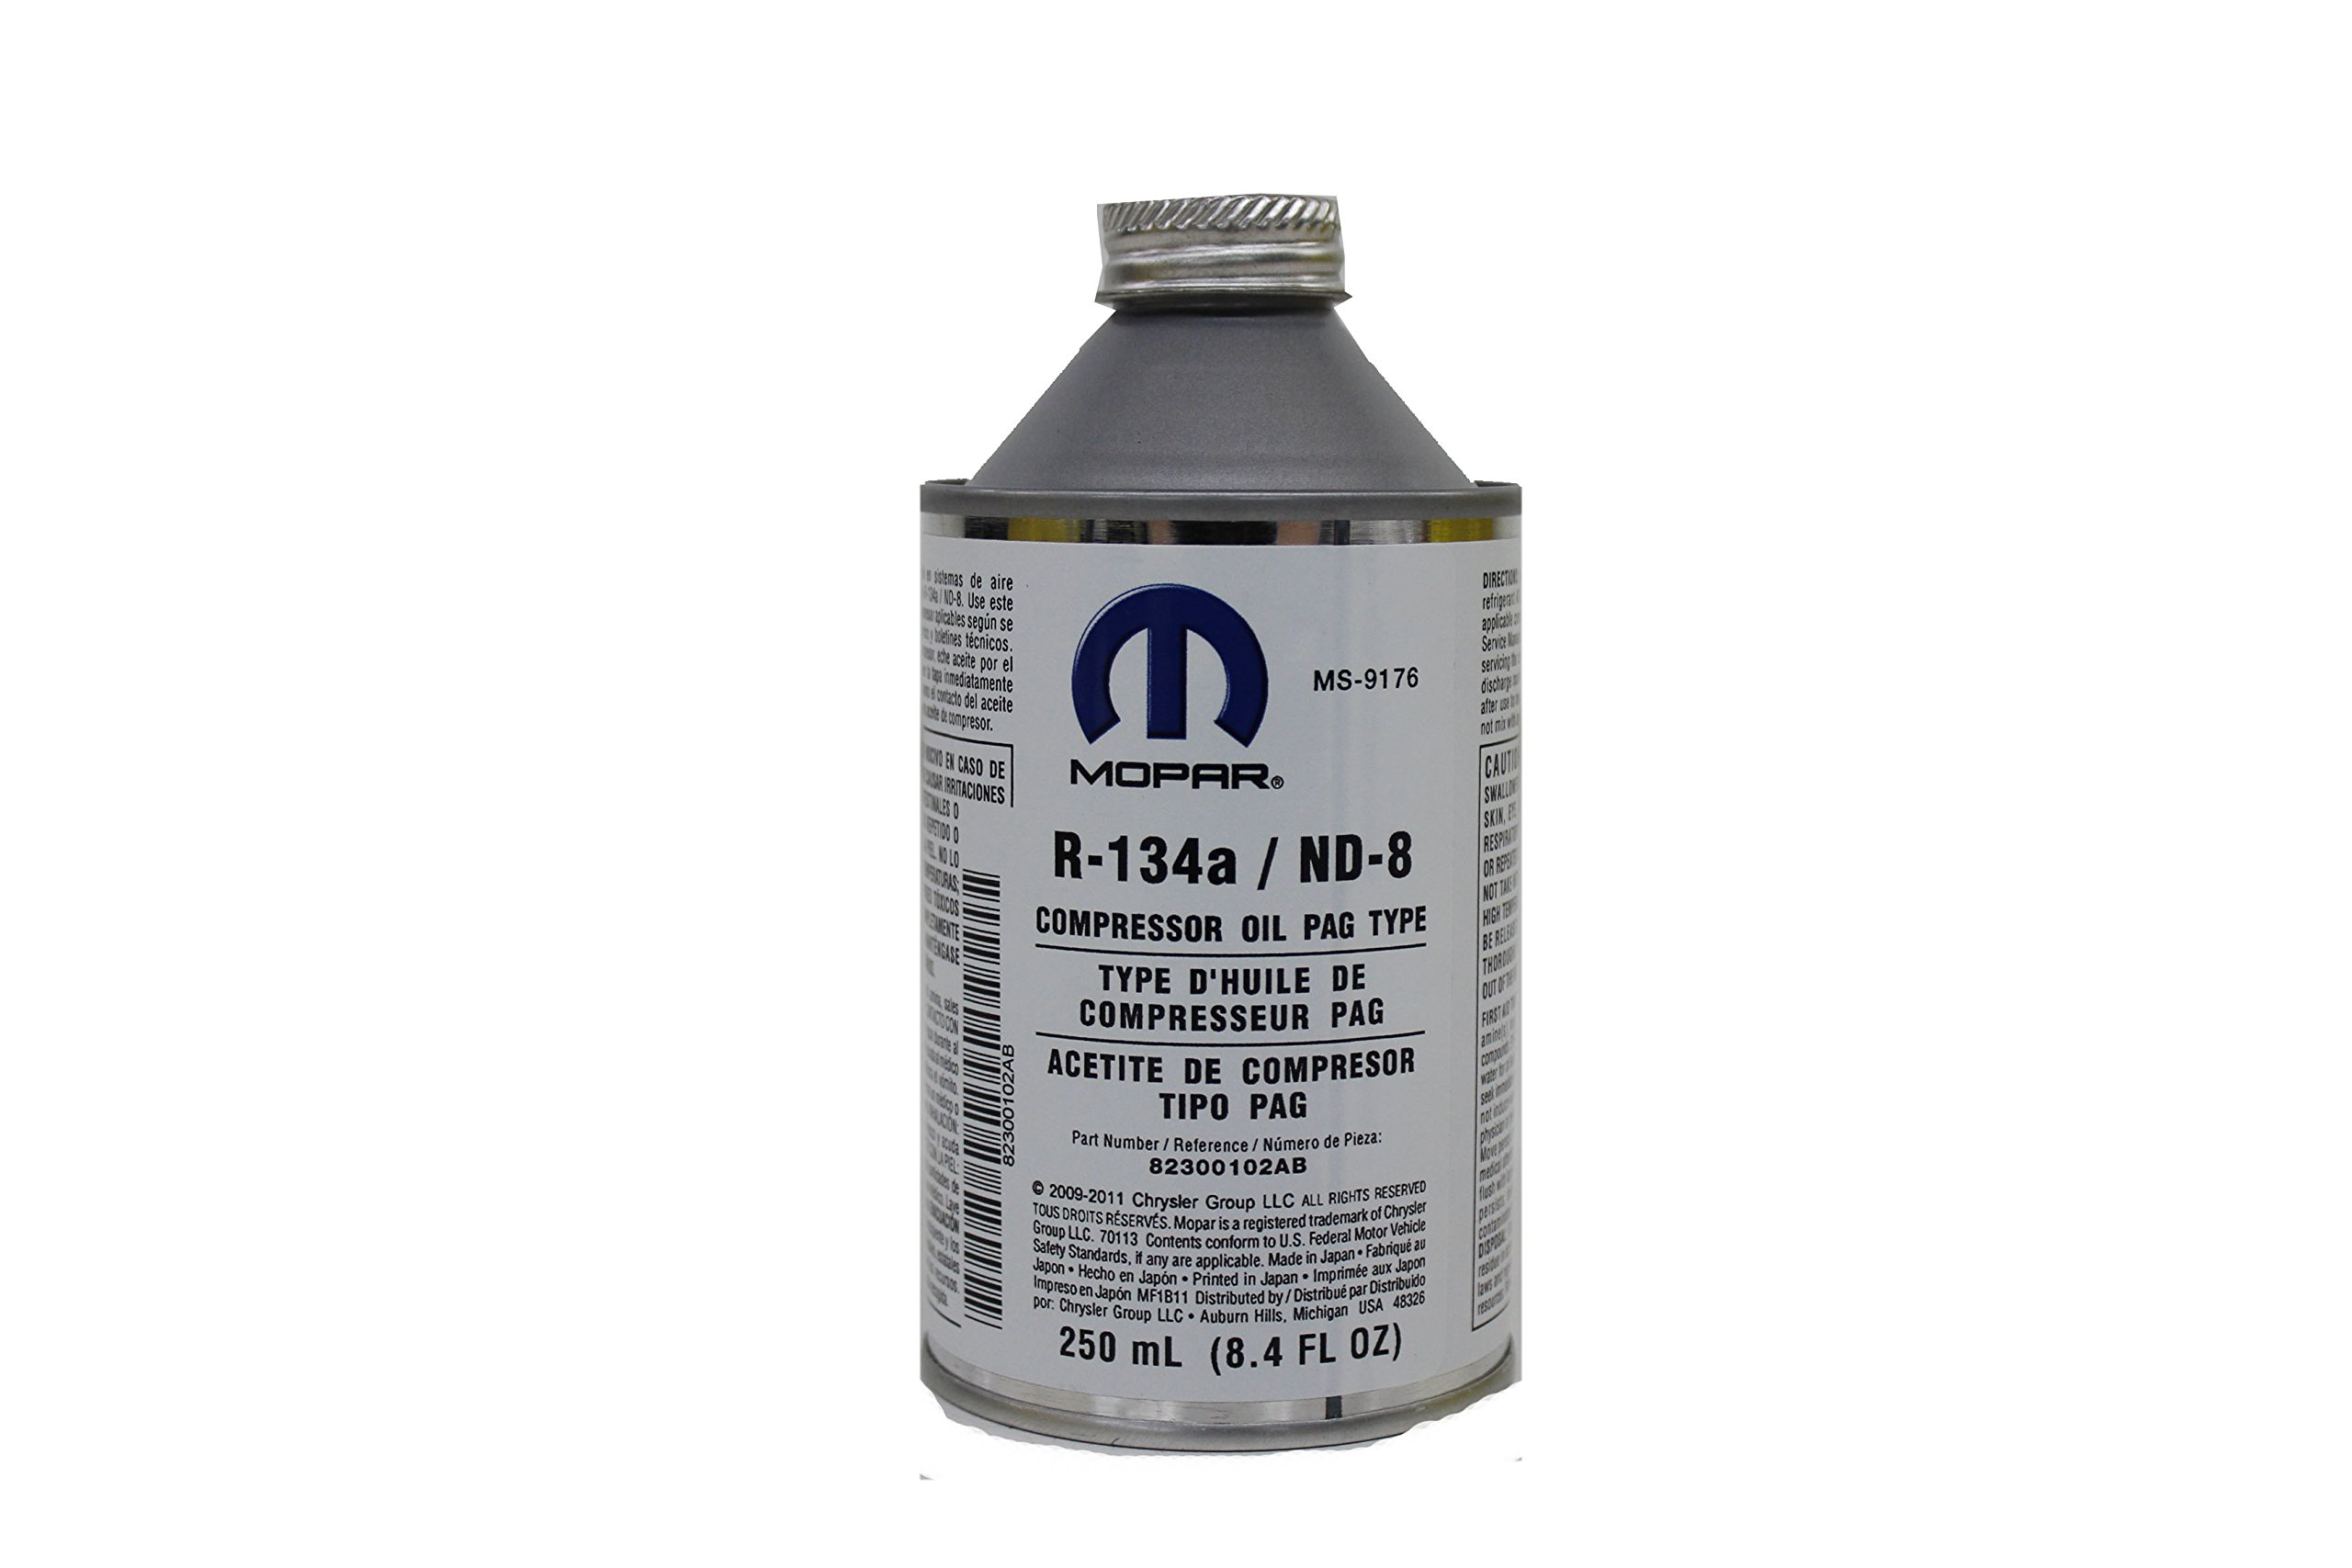 Chrysler Genuine Accessories (82300102AB) R-134a PAG Type Compressor Oil - 250 ml Can